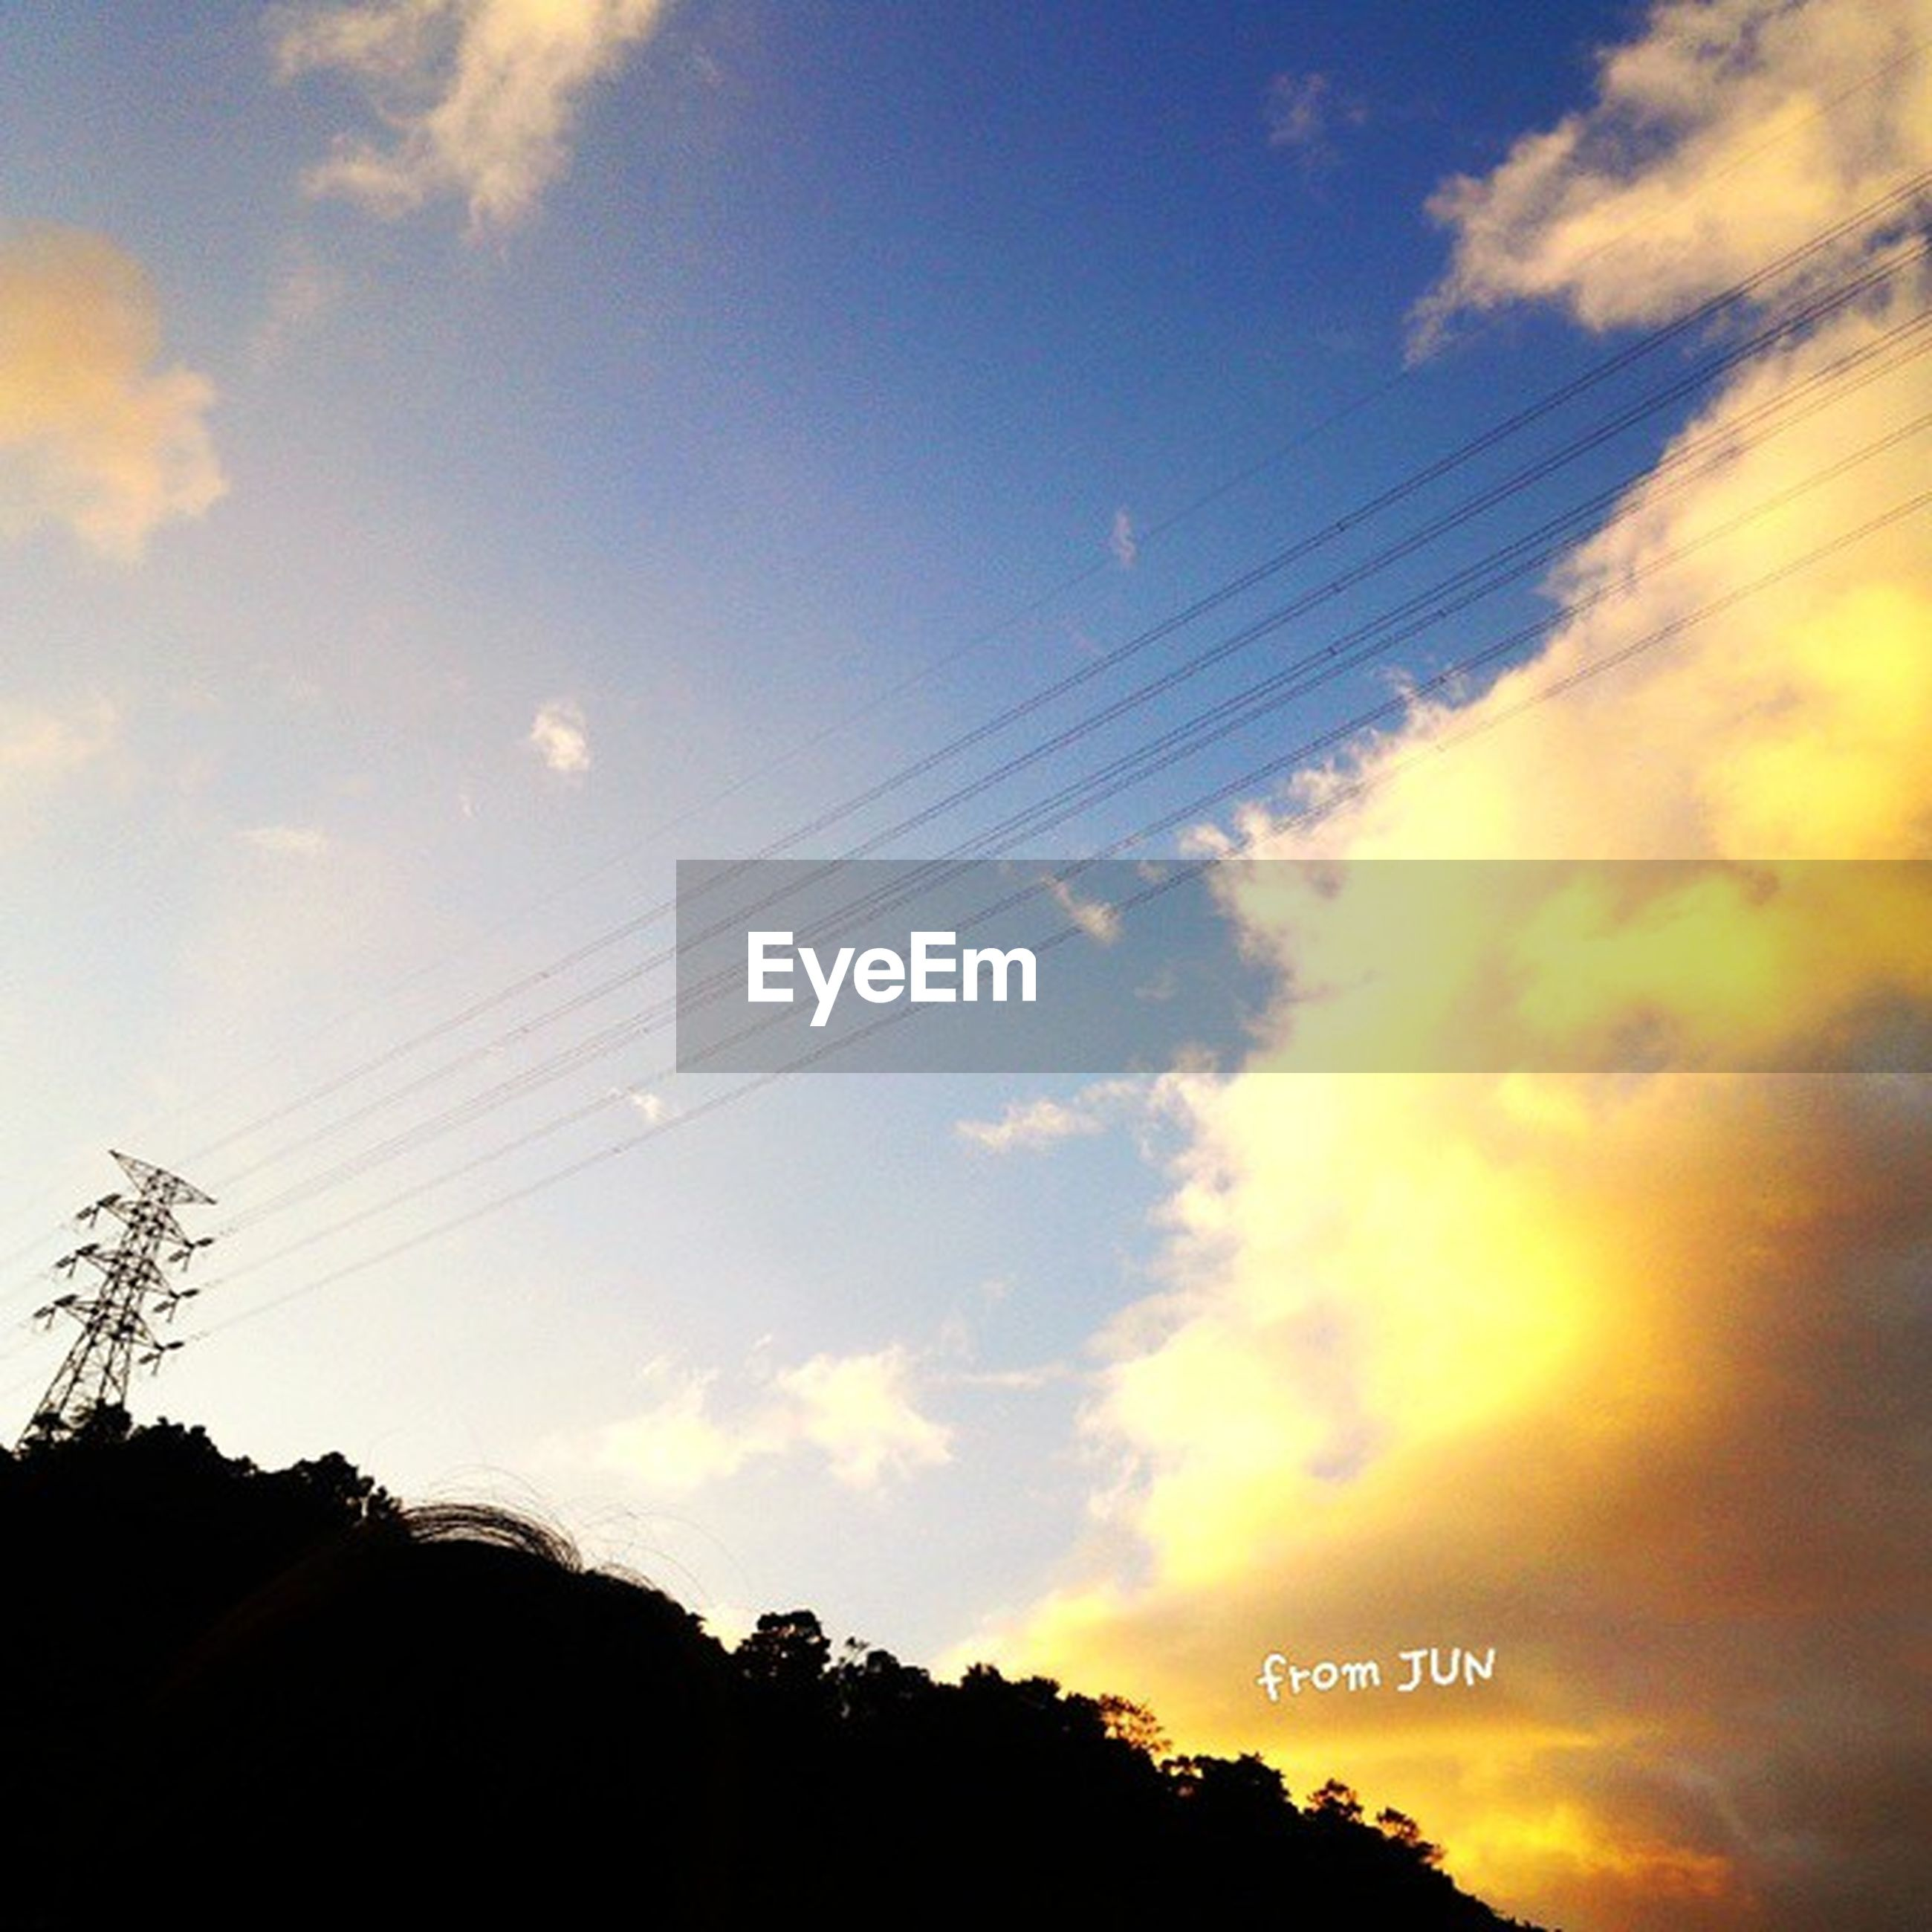 power line, sky, sunset, silhouette, low angle view, electricity pylon, cable, cloud - sky, power supply, connection, electricity, beauty in nature, tree, scenics, cloud, tranquility, nature, cloudy, tranquil scene, power cable